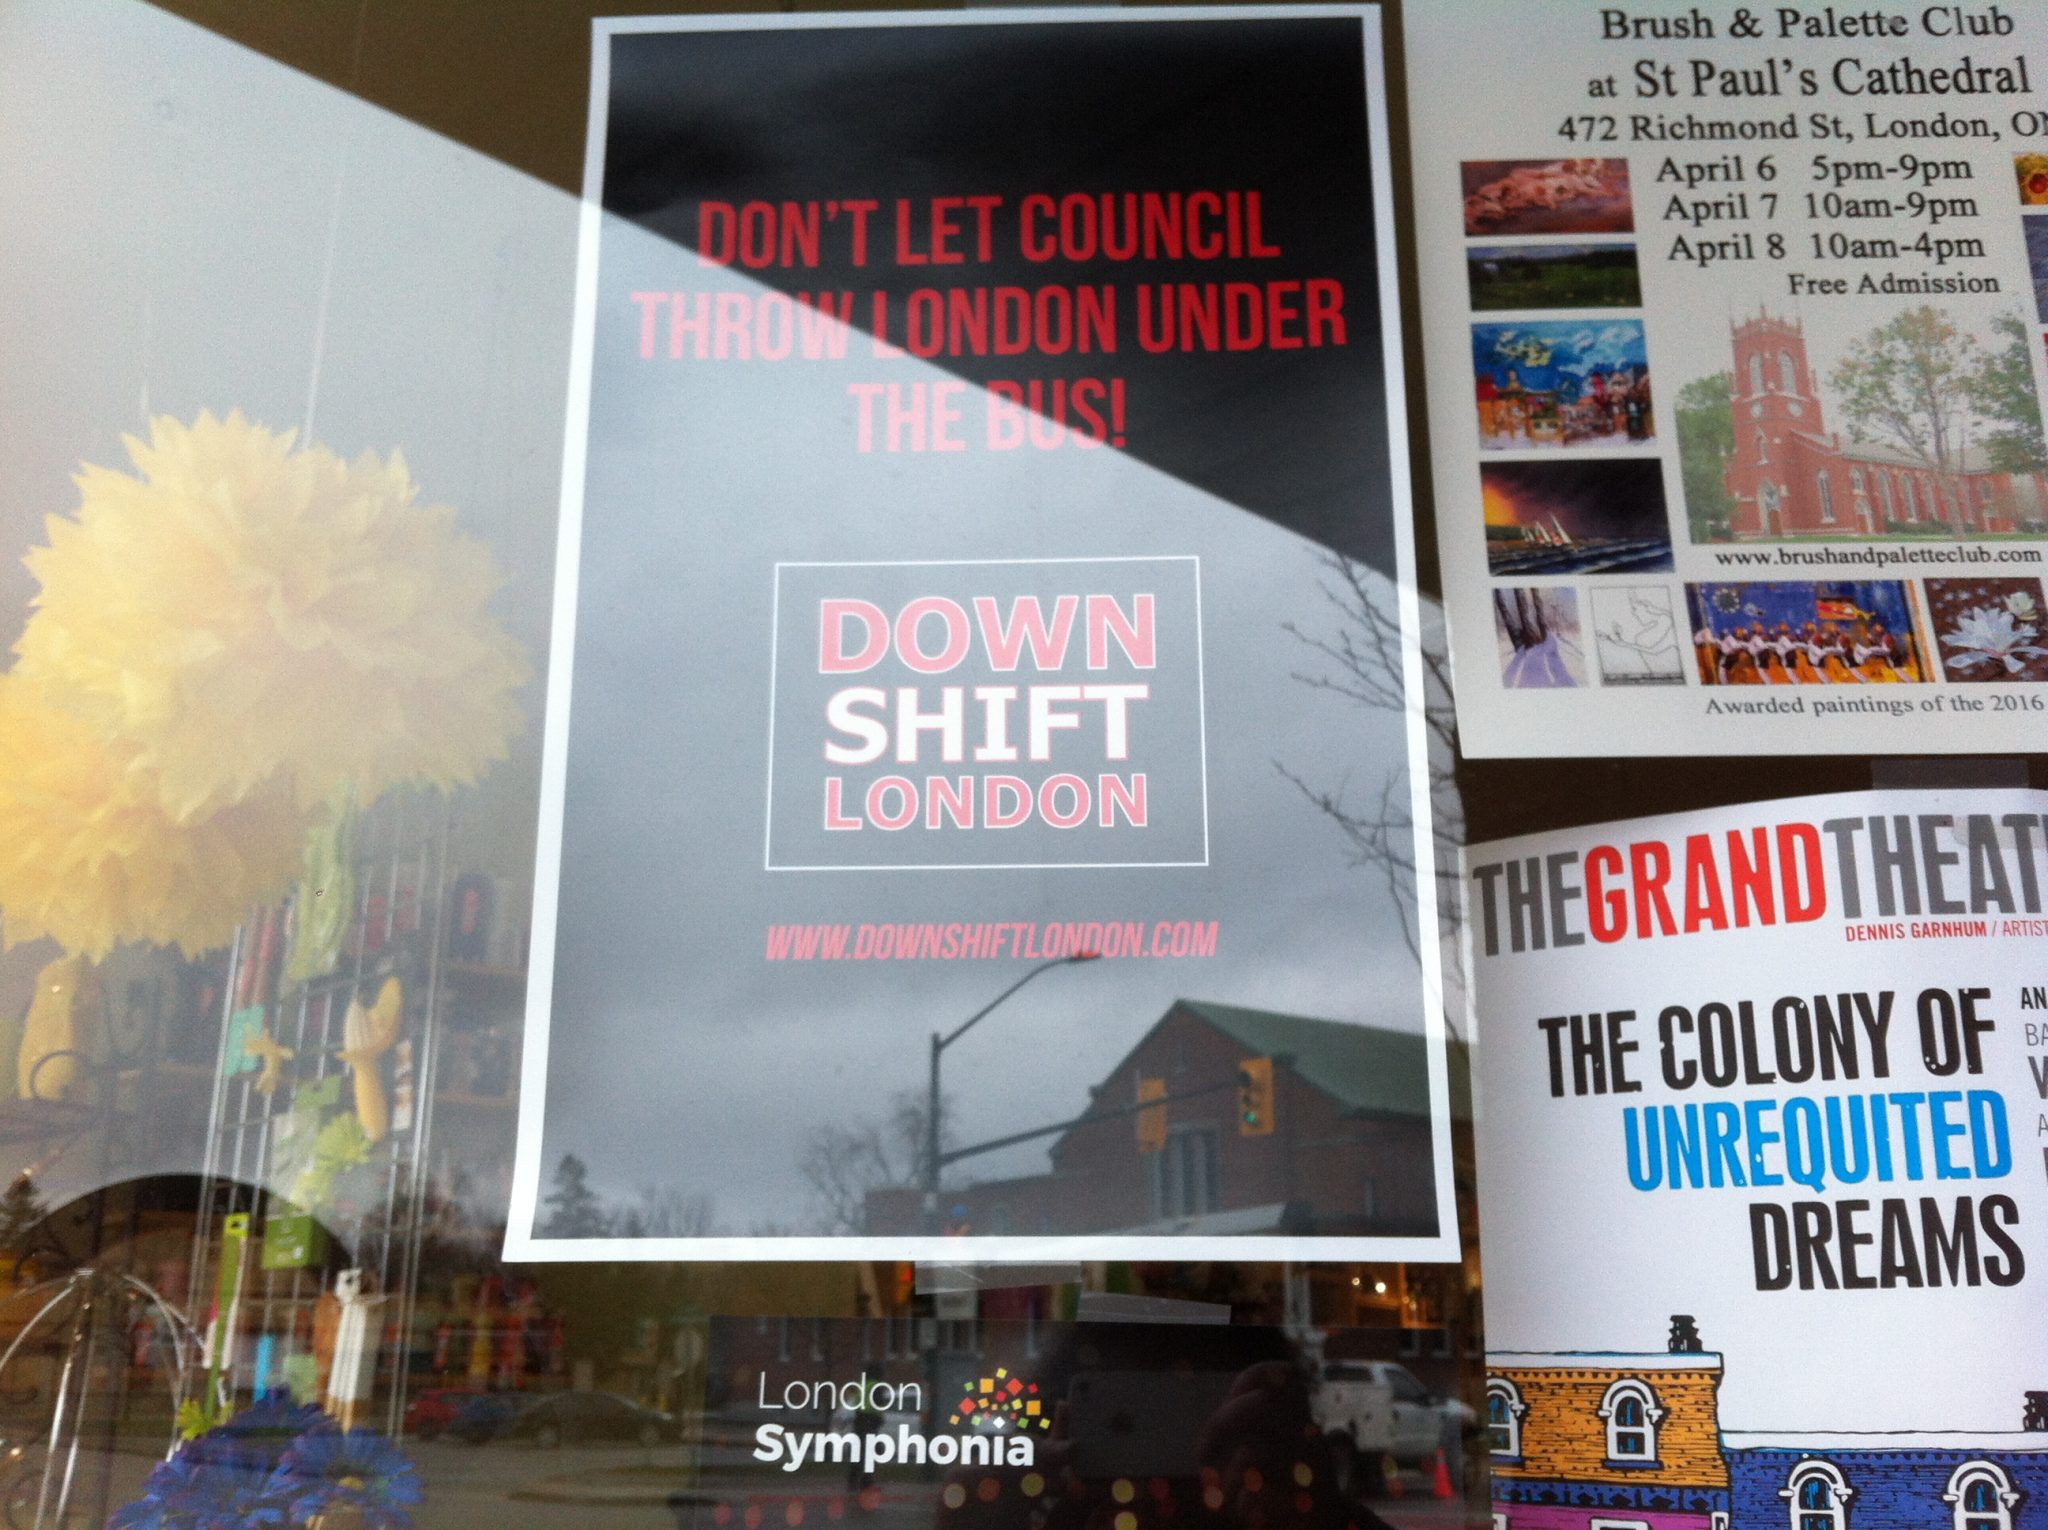 """A window with a black Down Shift London Poster that says """"Don't let council throw London under the bus!"""" in red letters"""